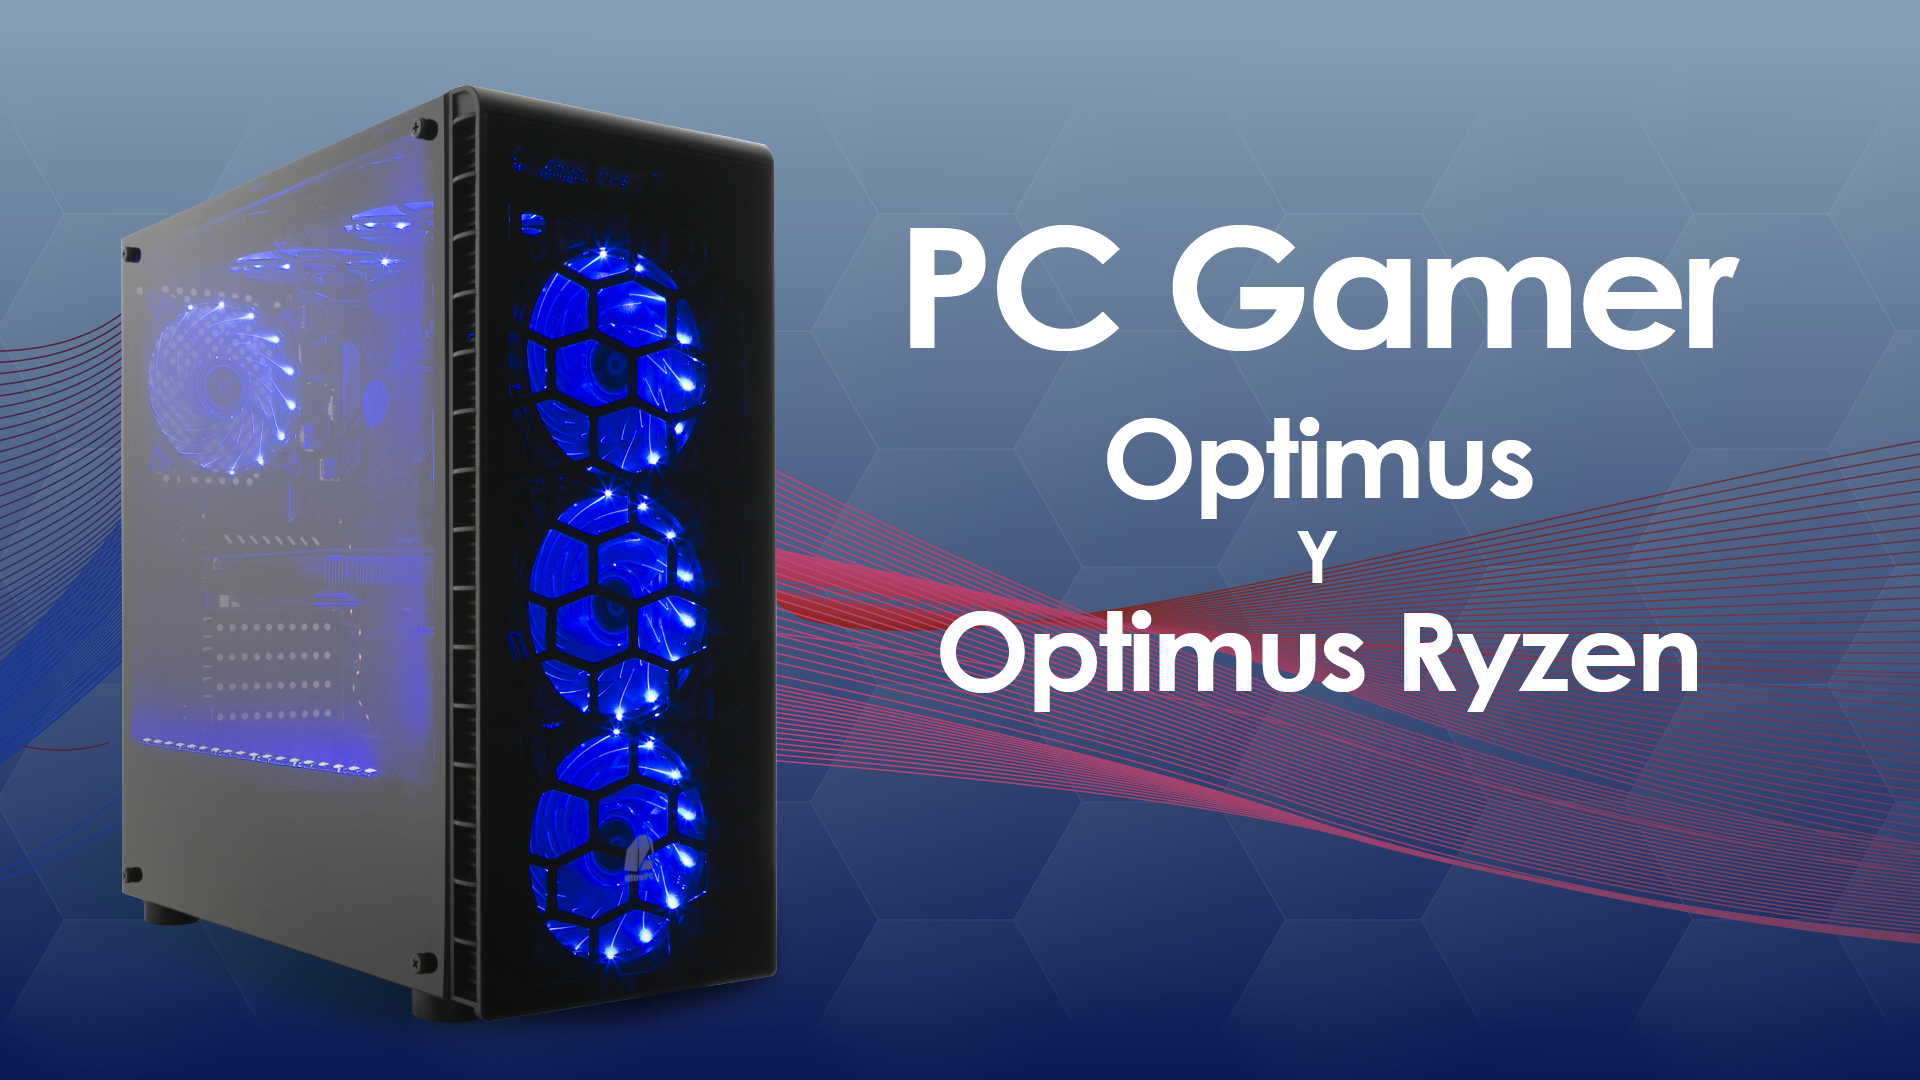 PC Gamer Optimus y Optimus Ryzen